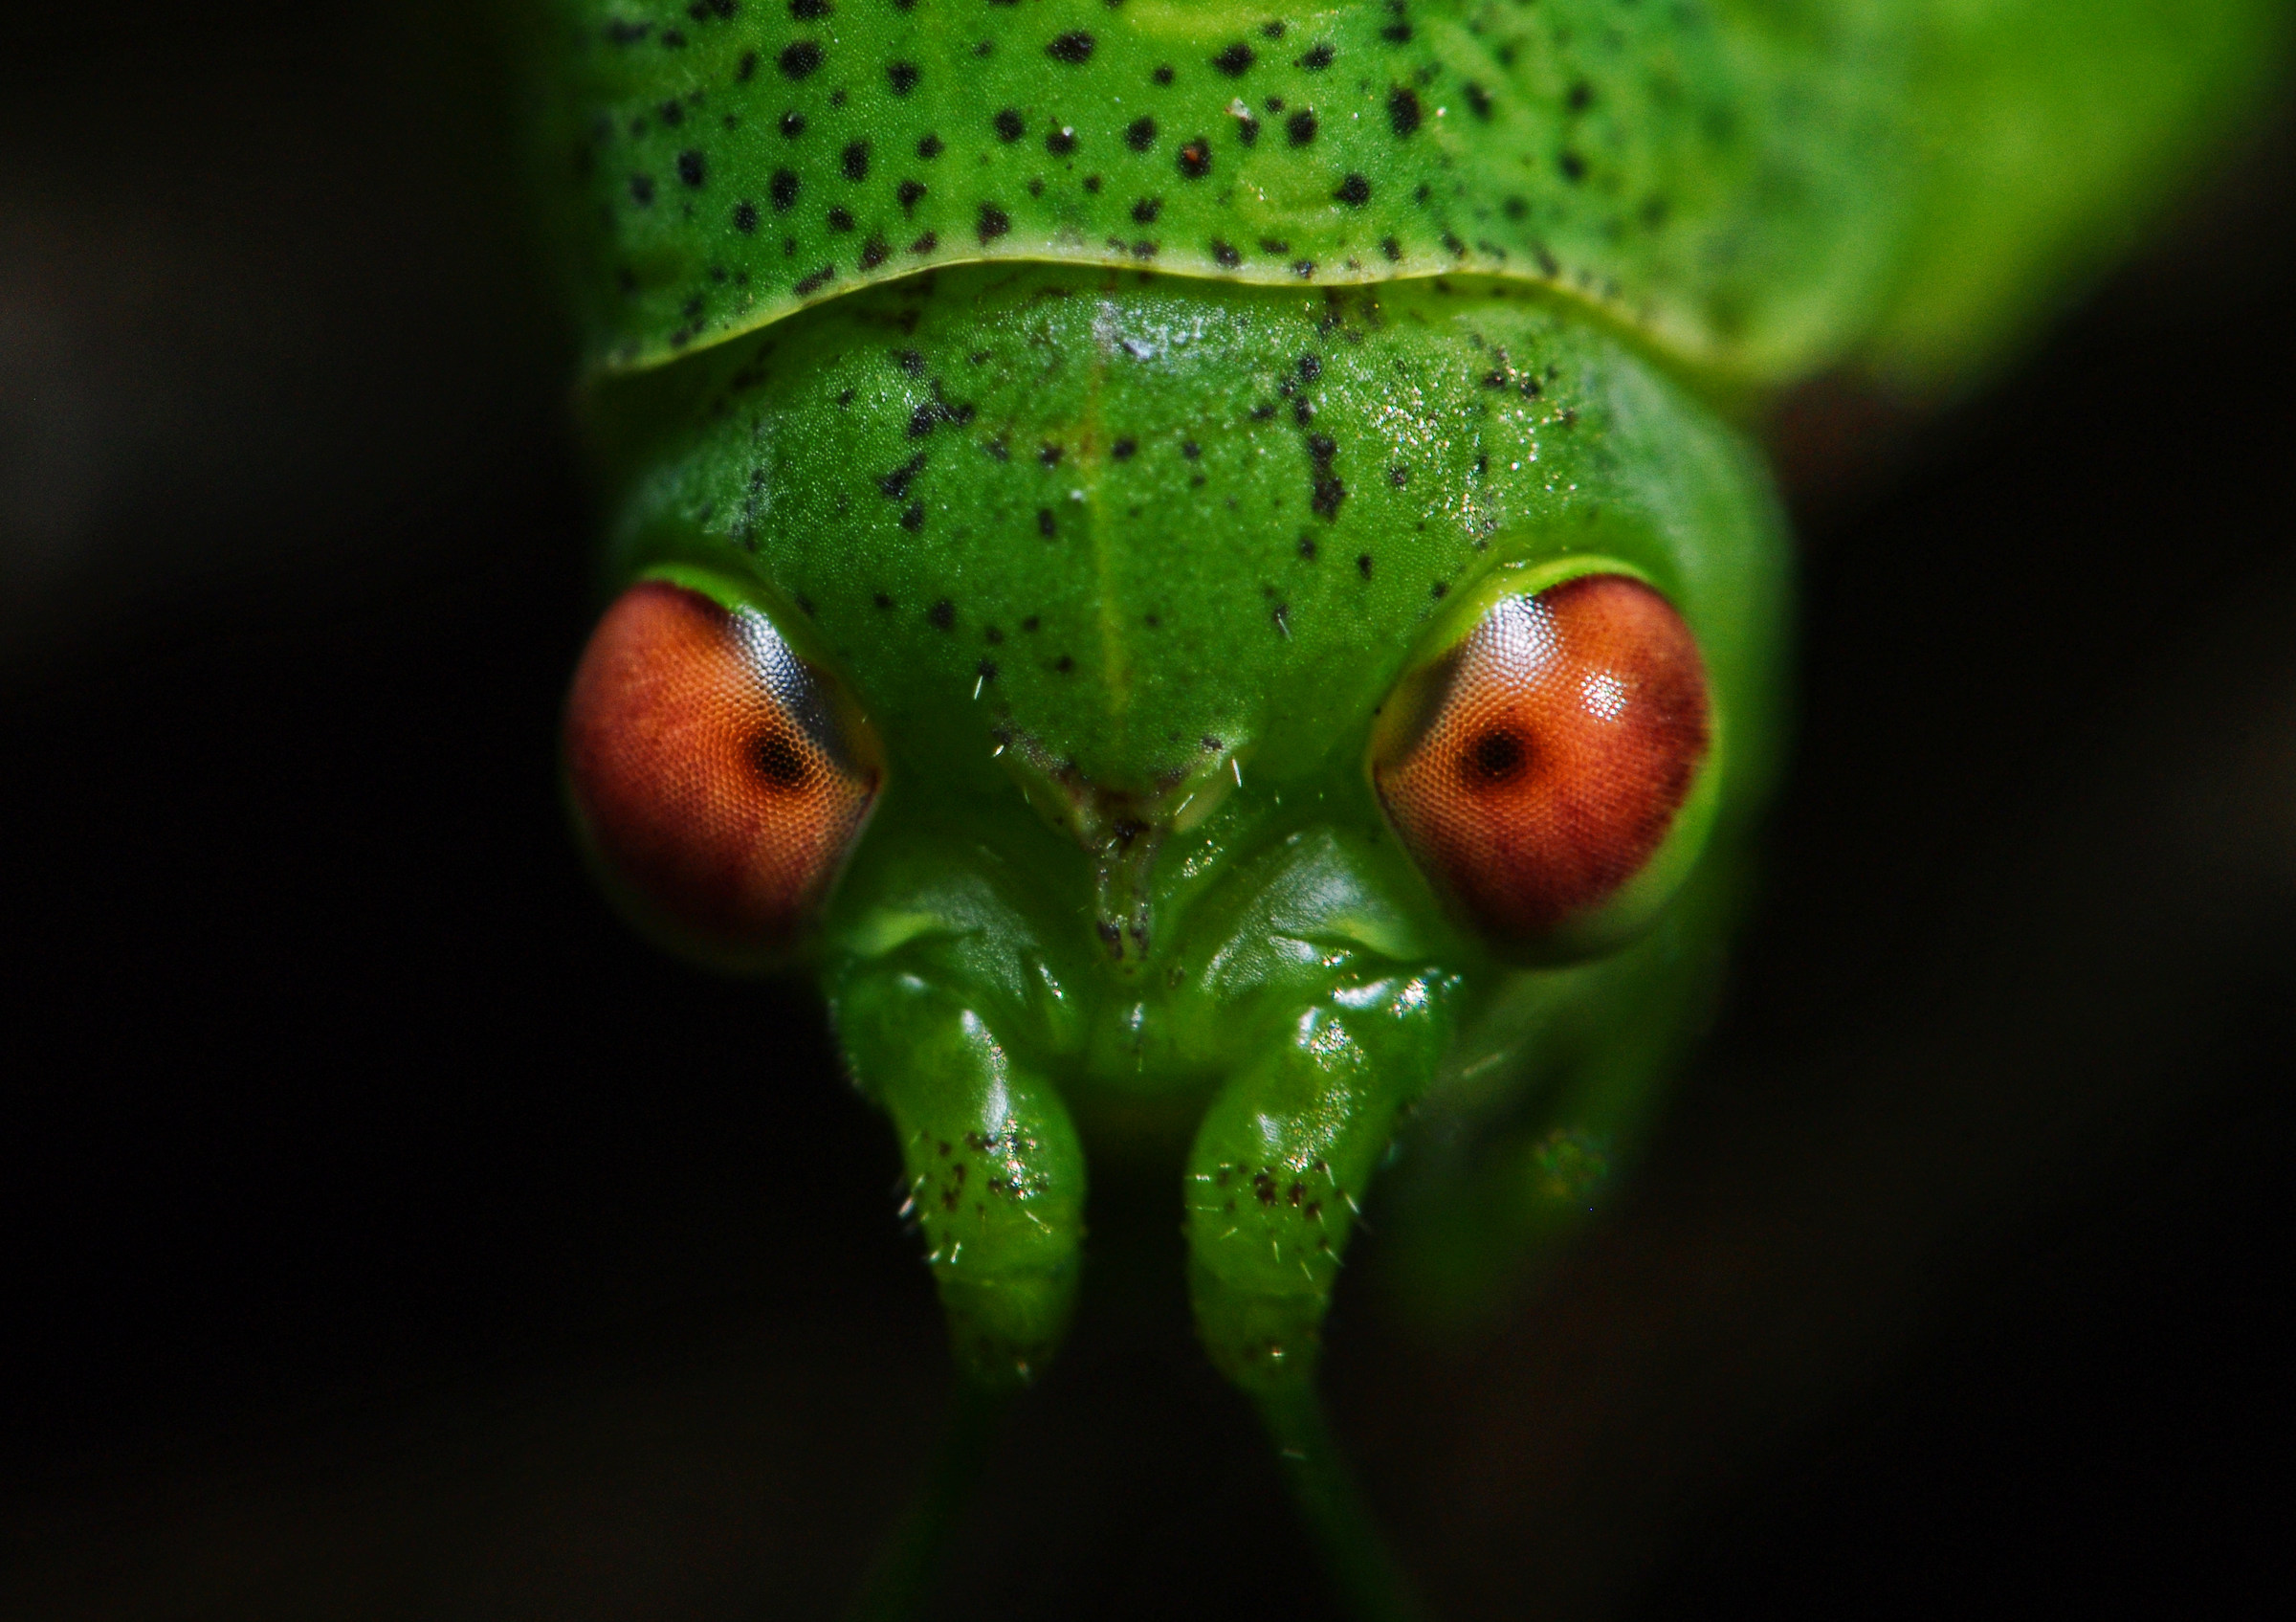 Have you ever looked in the eyes of a grasshopper?...